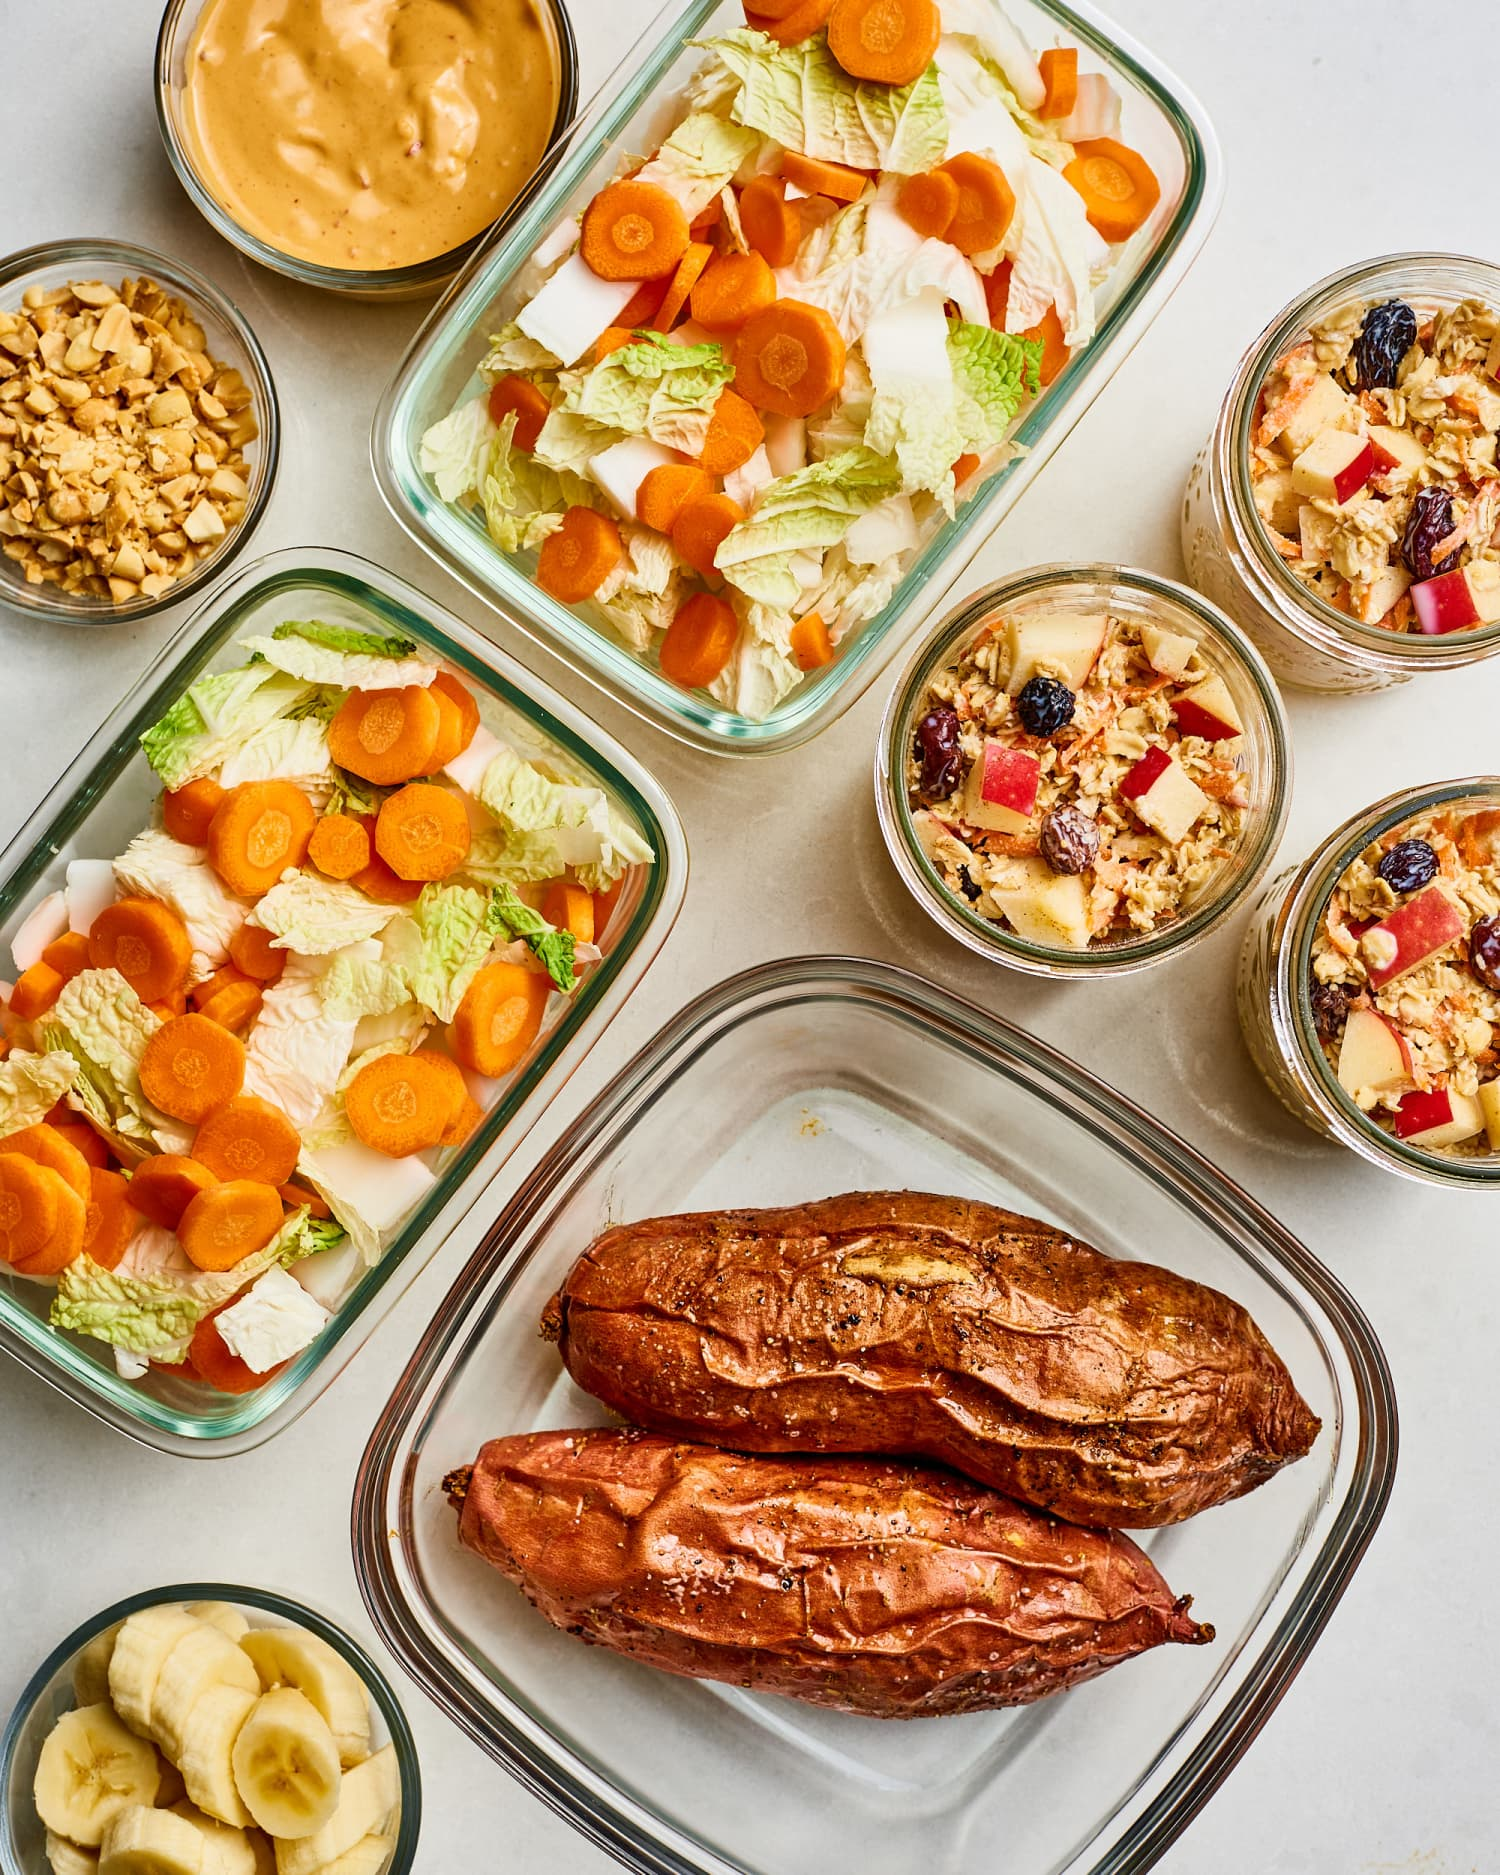 Here Are 7 Weeks' Worth of Plant-Based Meals